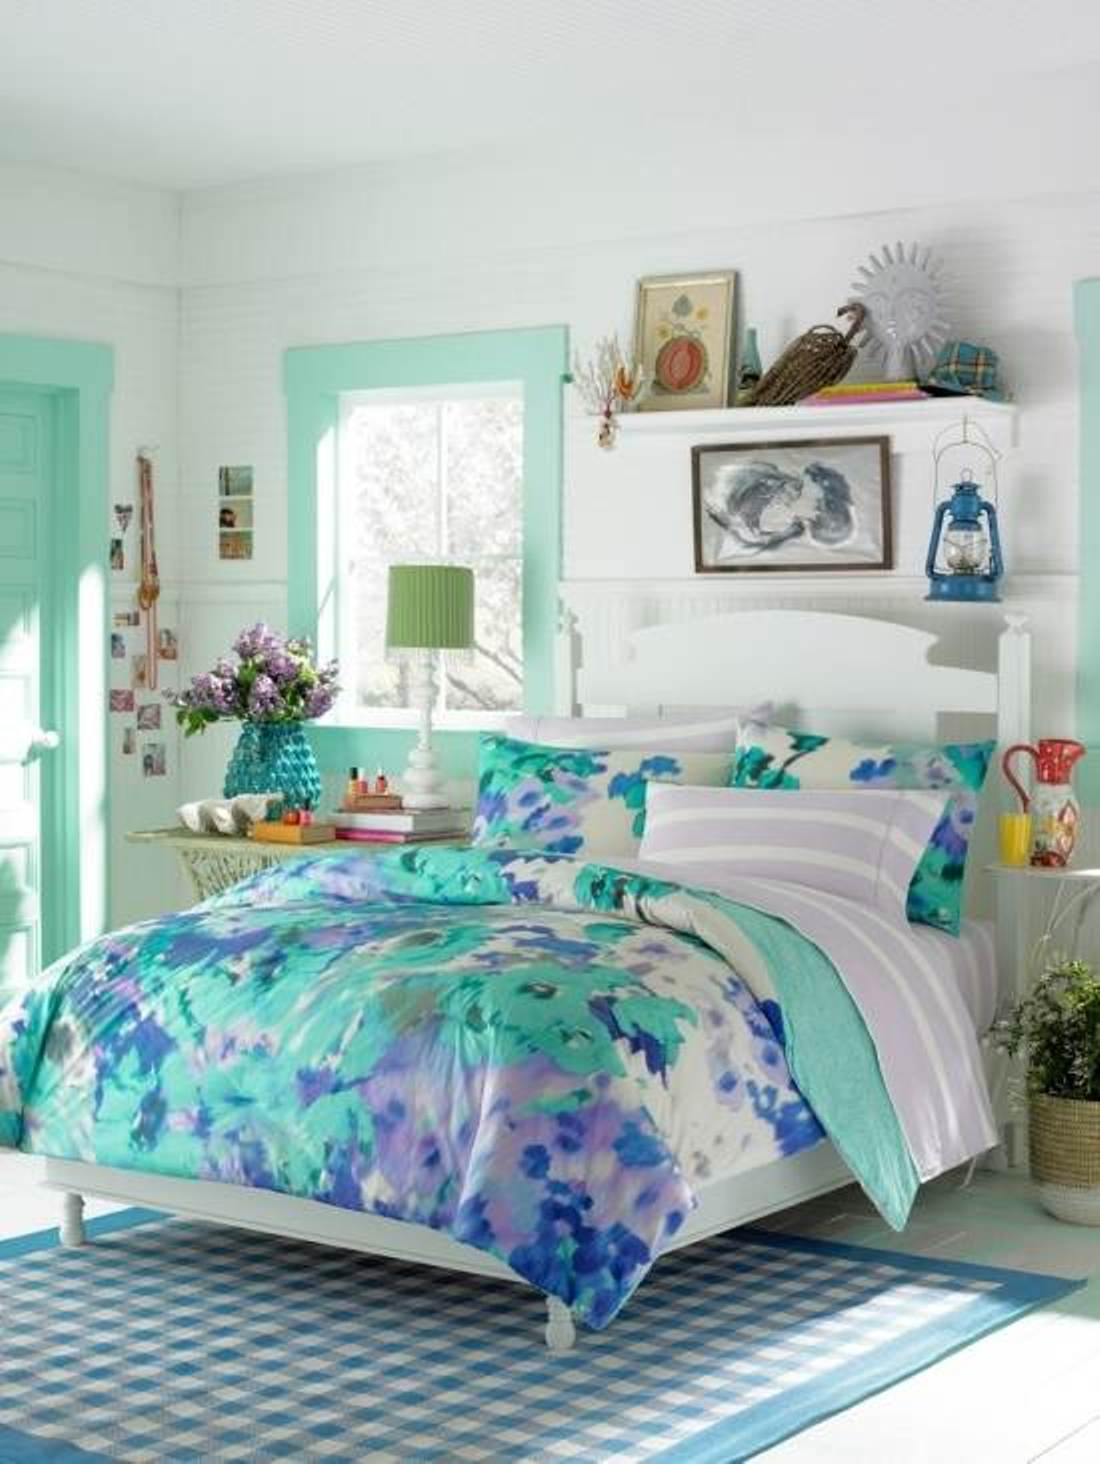 Cute outstanding girls bedrooms | ... Teenage Girl Bedroom Blue Flower Themes themed room ideas for teenage girl